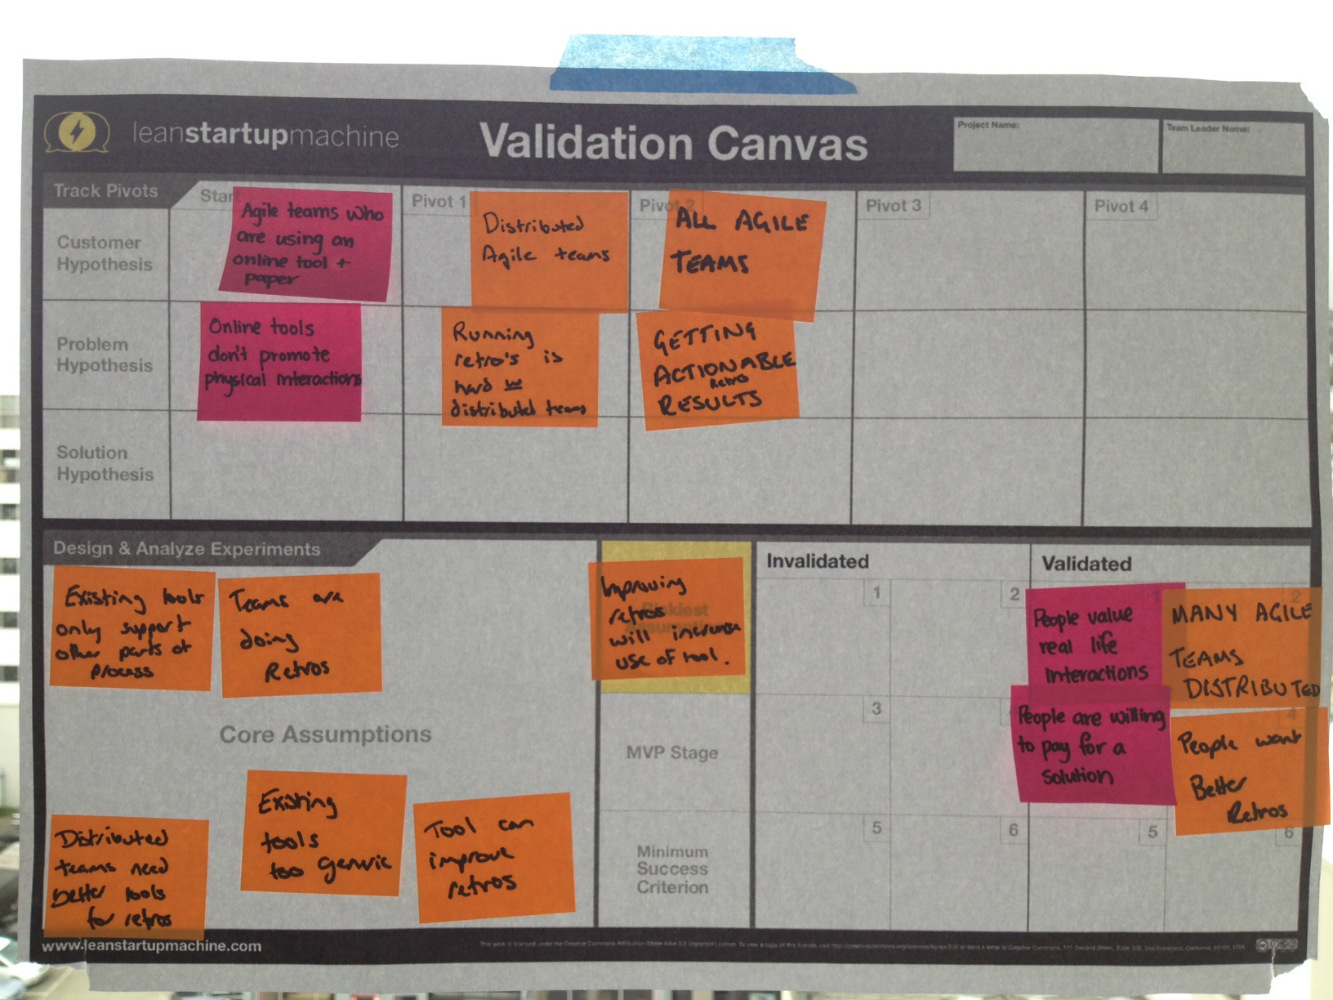 The validation canvas for our product research